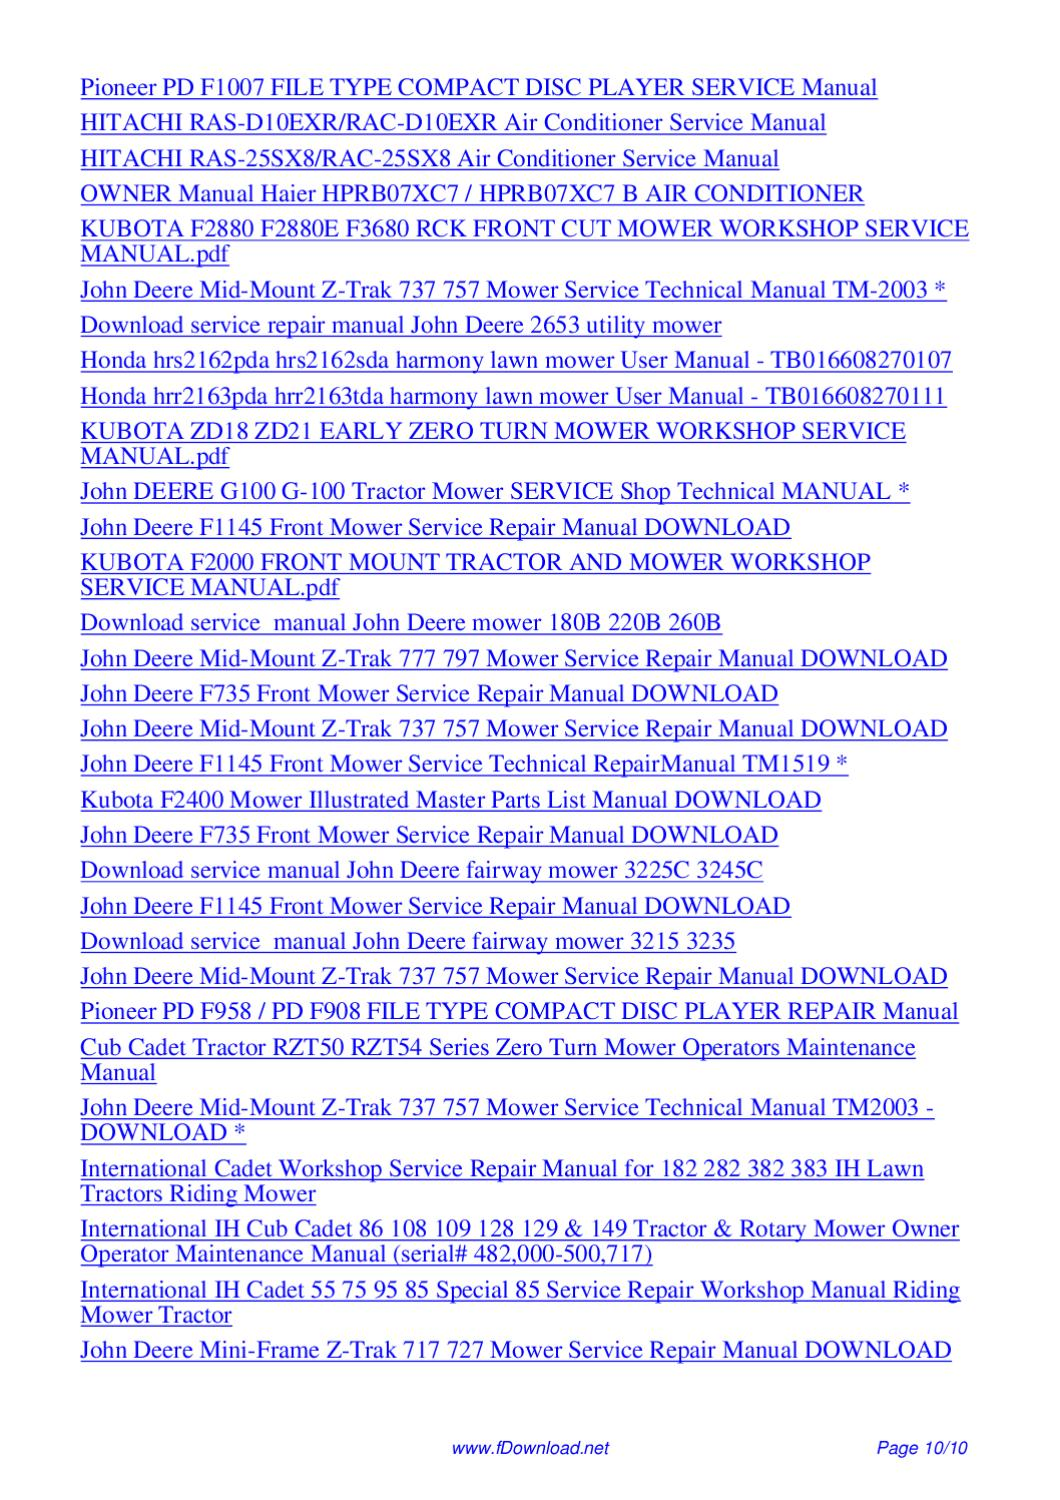 New Holland Nh 1412 Flail Disc Mower Conditioner Parts Manual 55141210nf Pdf By Giler Kong